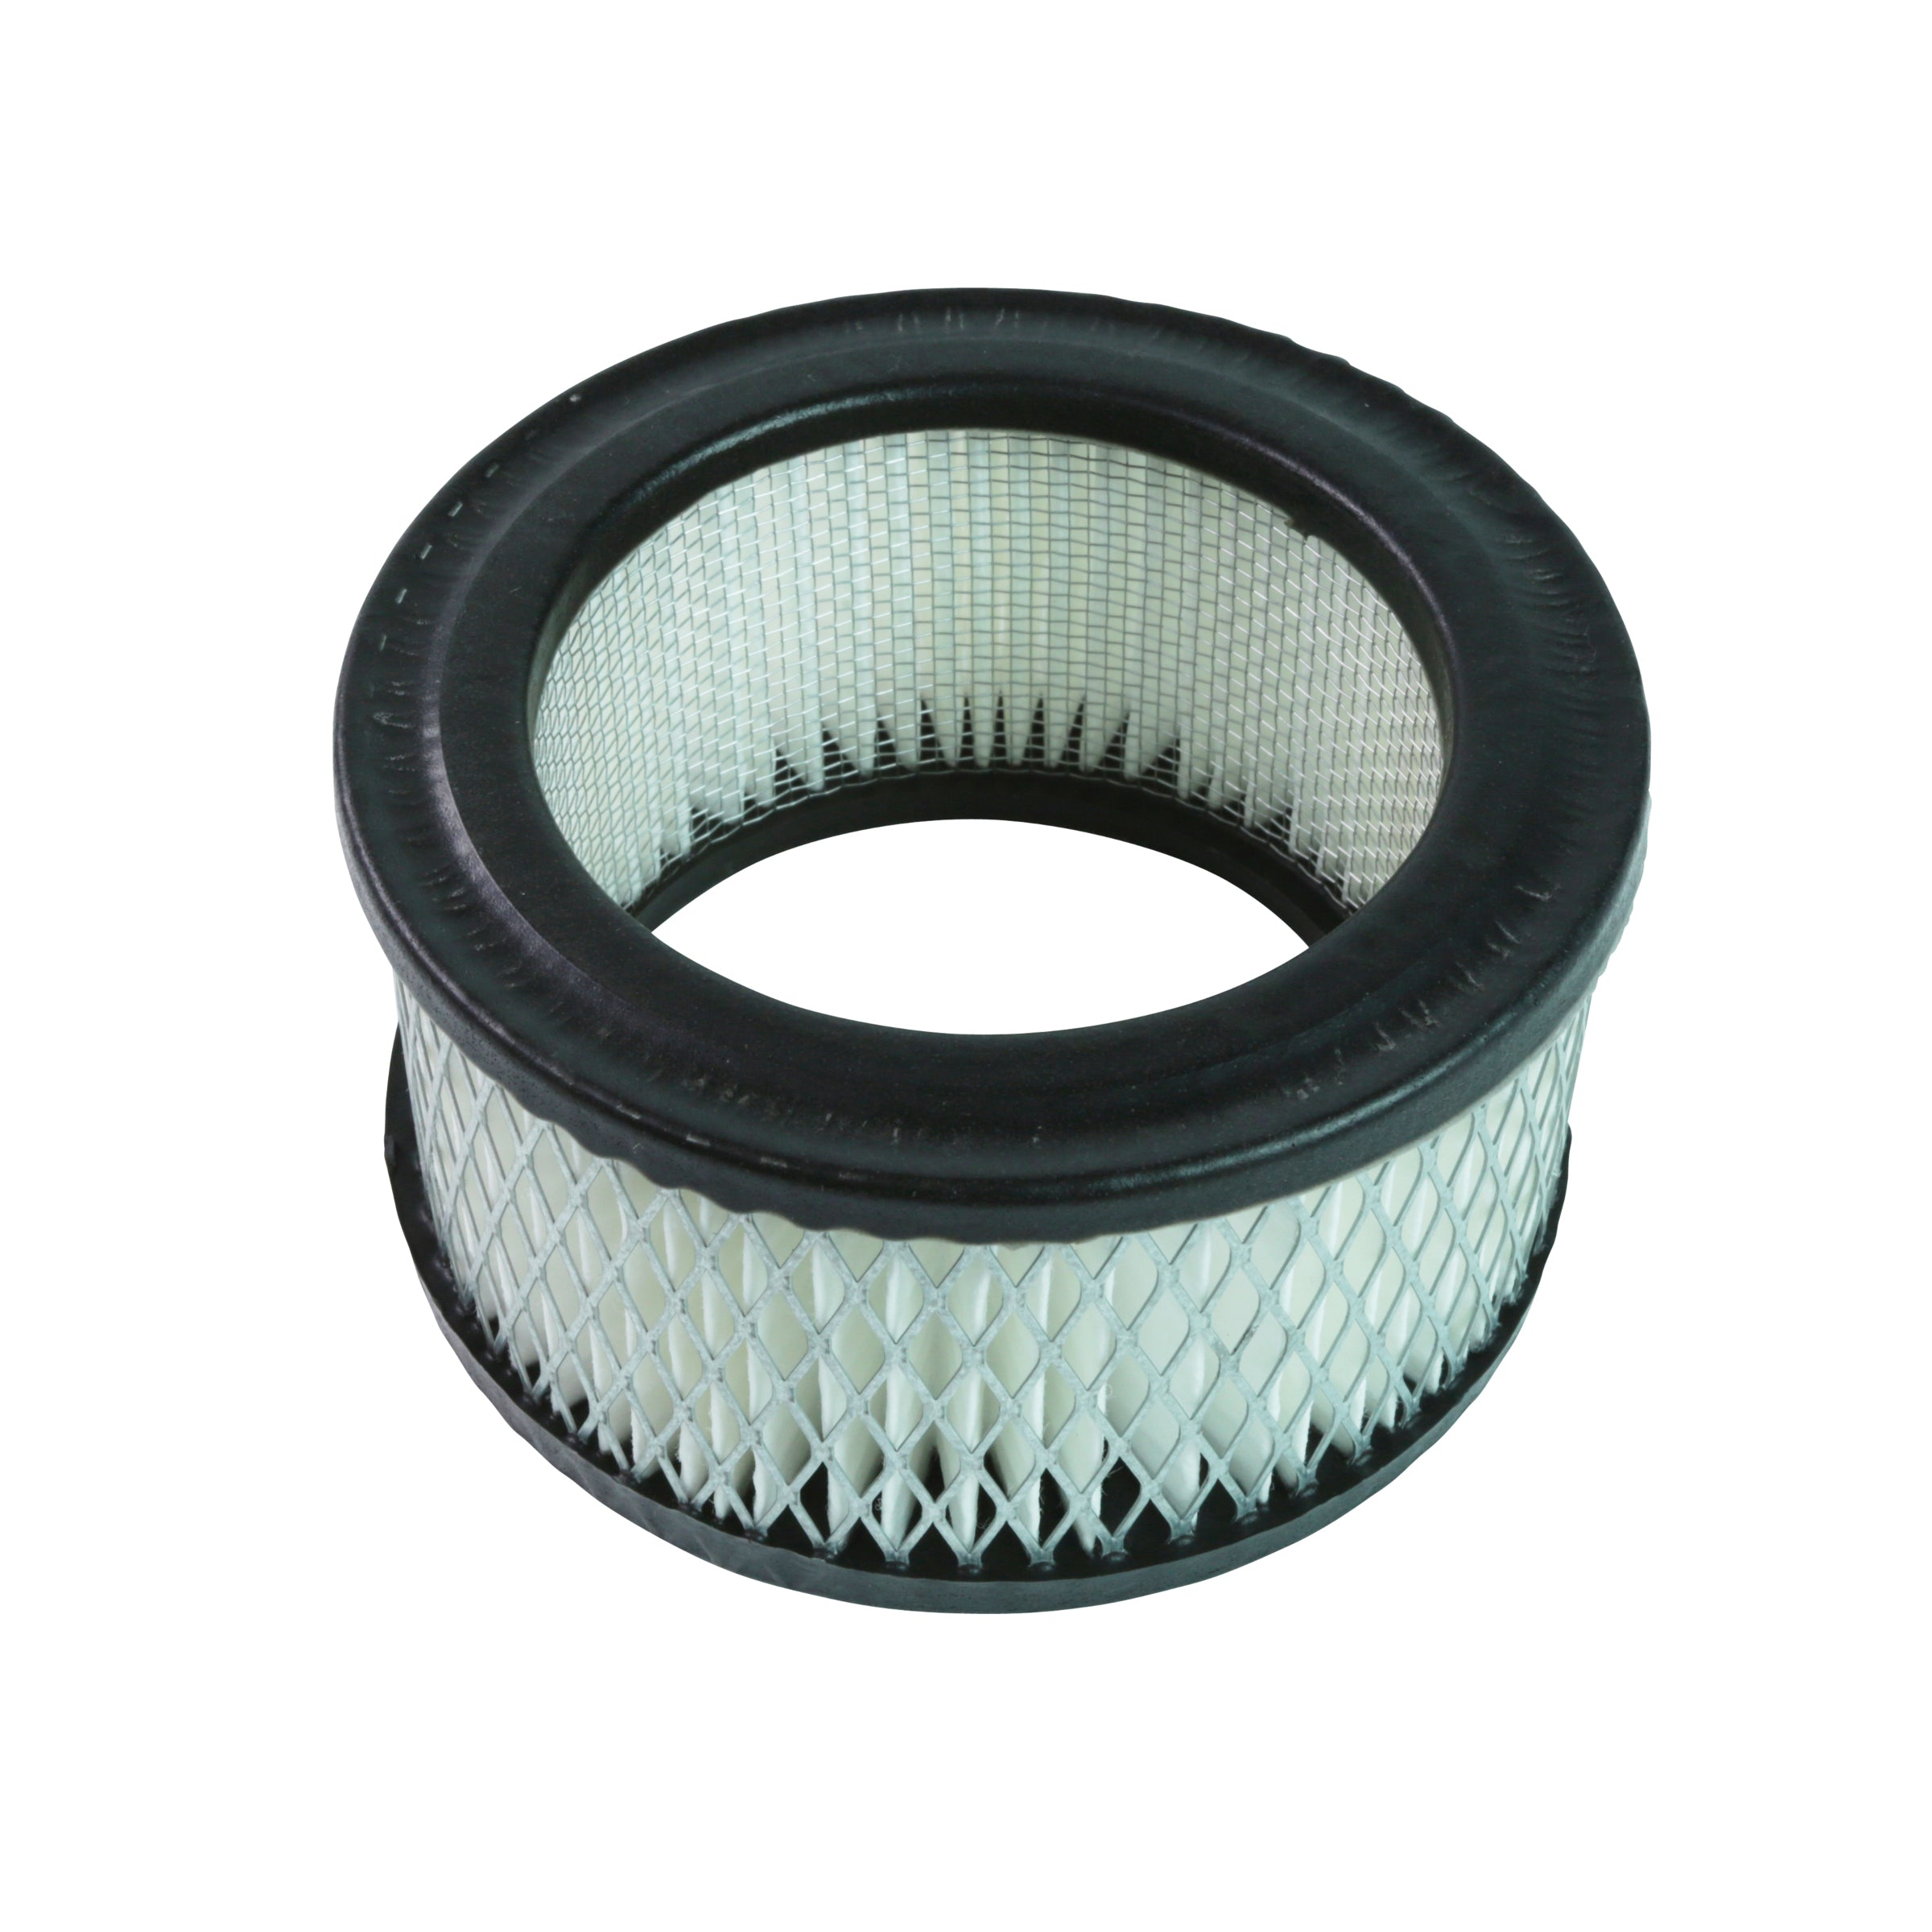 Air Cleaner Replacement Filter • Hot Rod Style